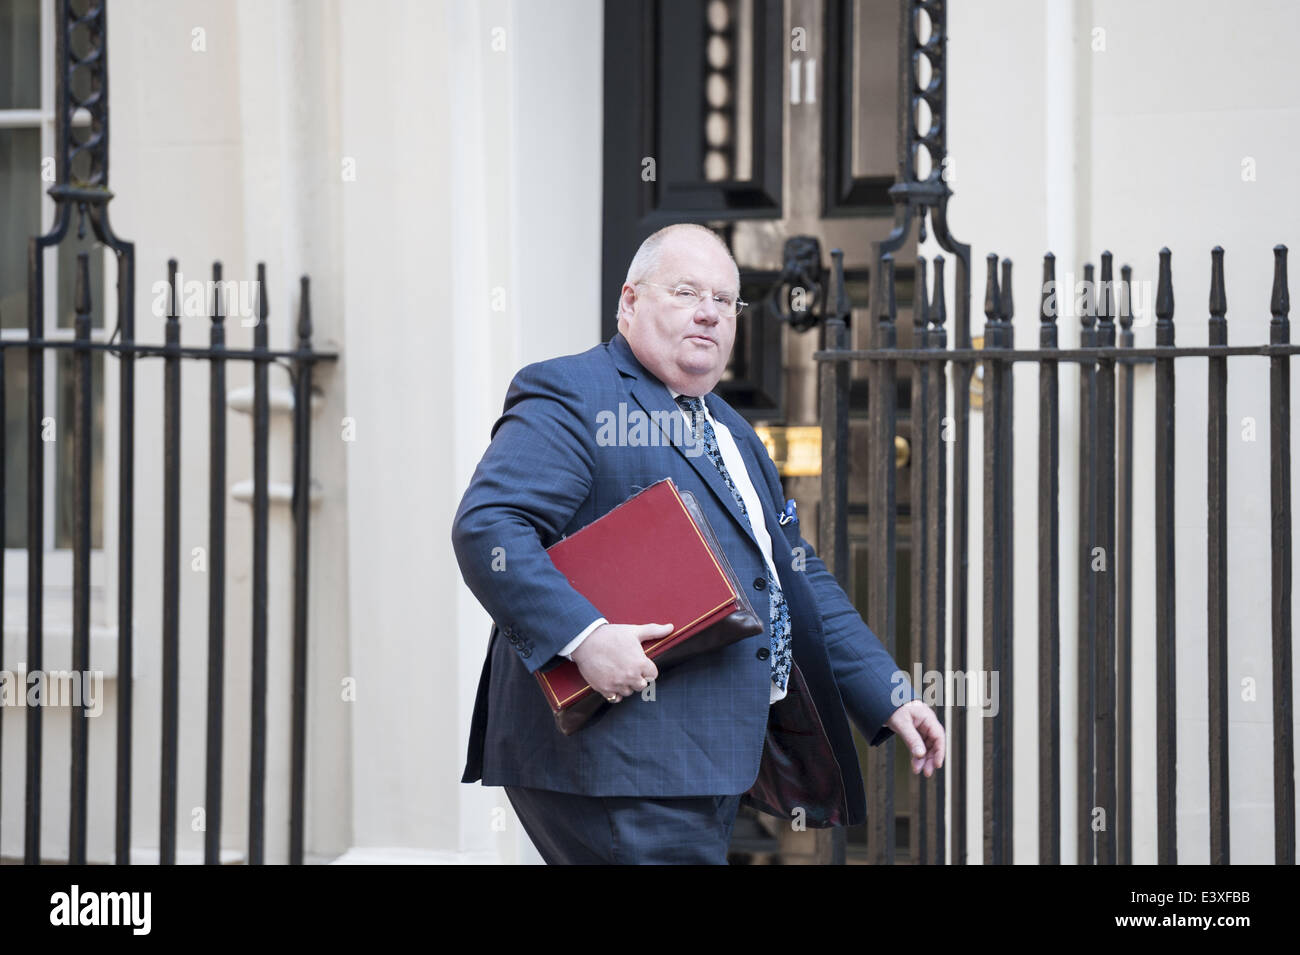 London, UK. 1st July, 2014. Ministers arrive at Downing Street in London for the weekly Cabinet Meeting. Pictured: Stock Photo